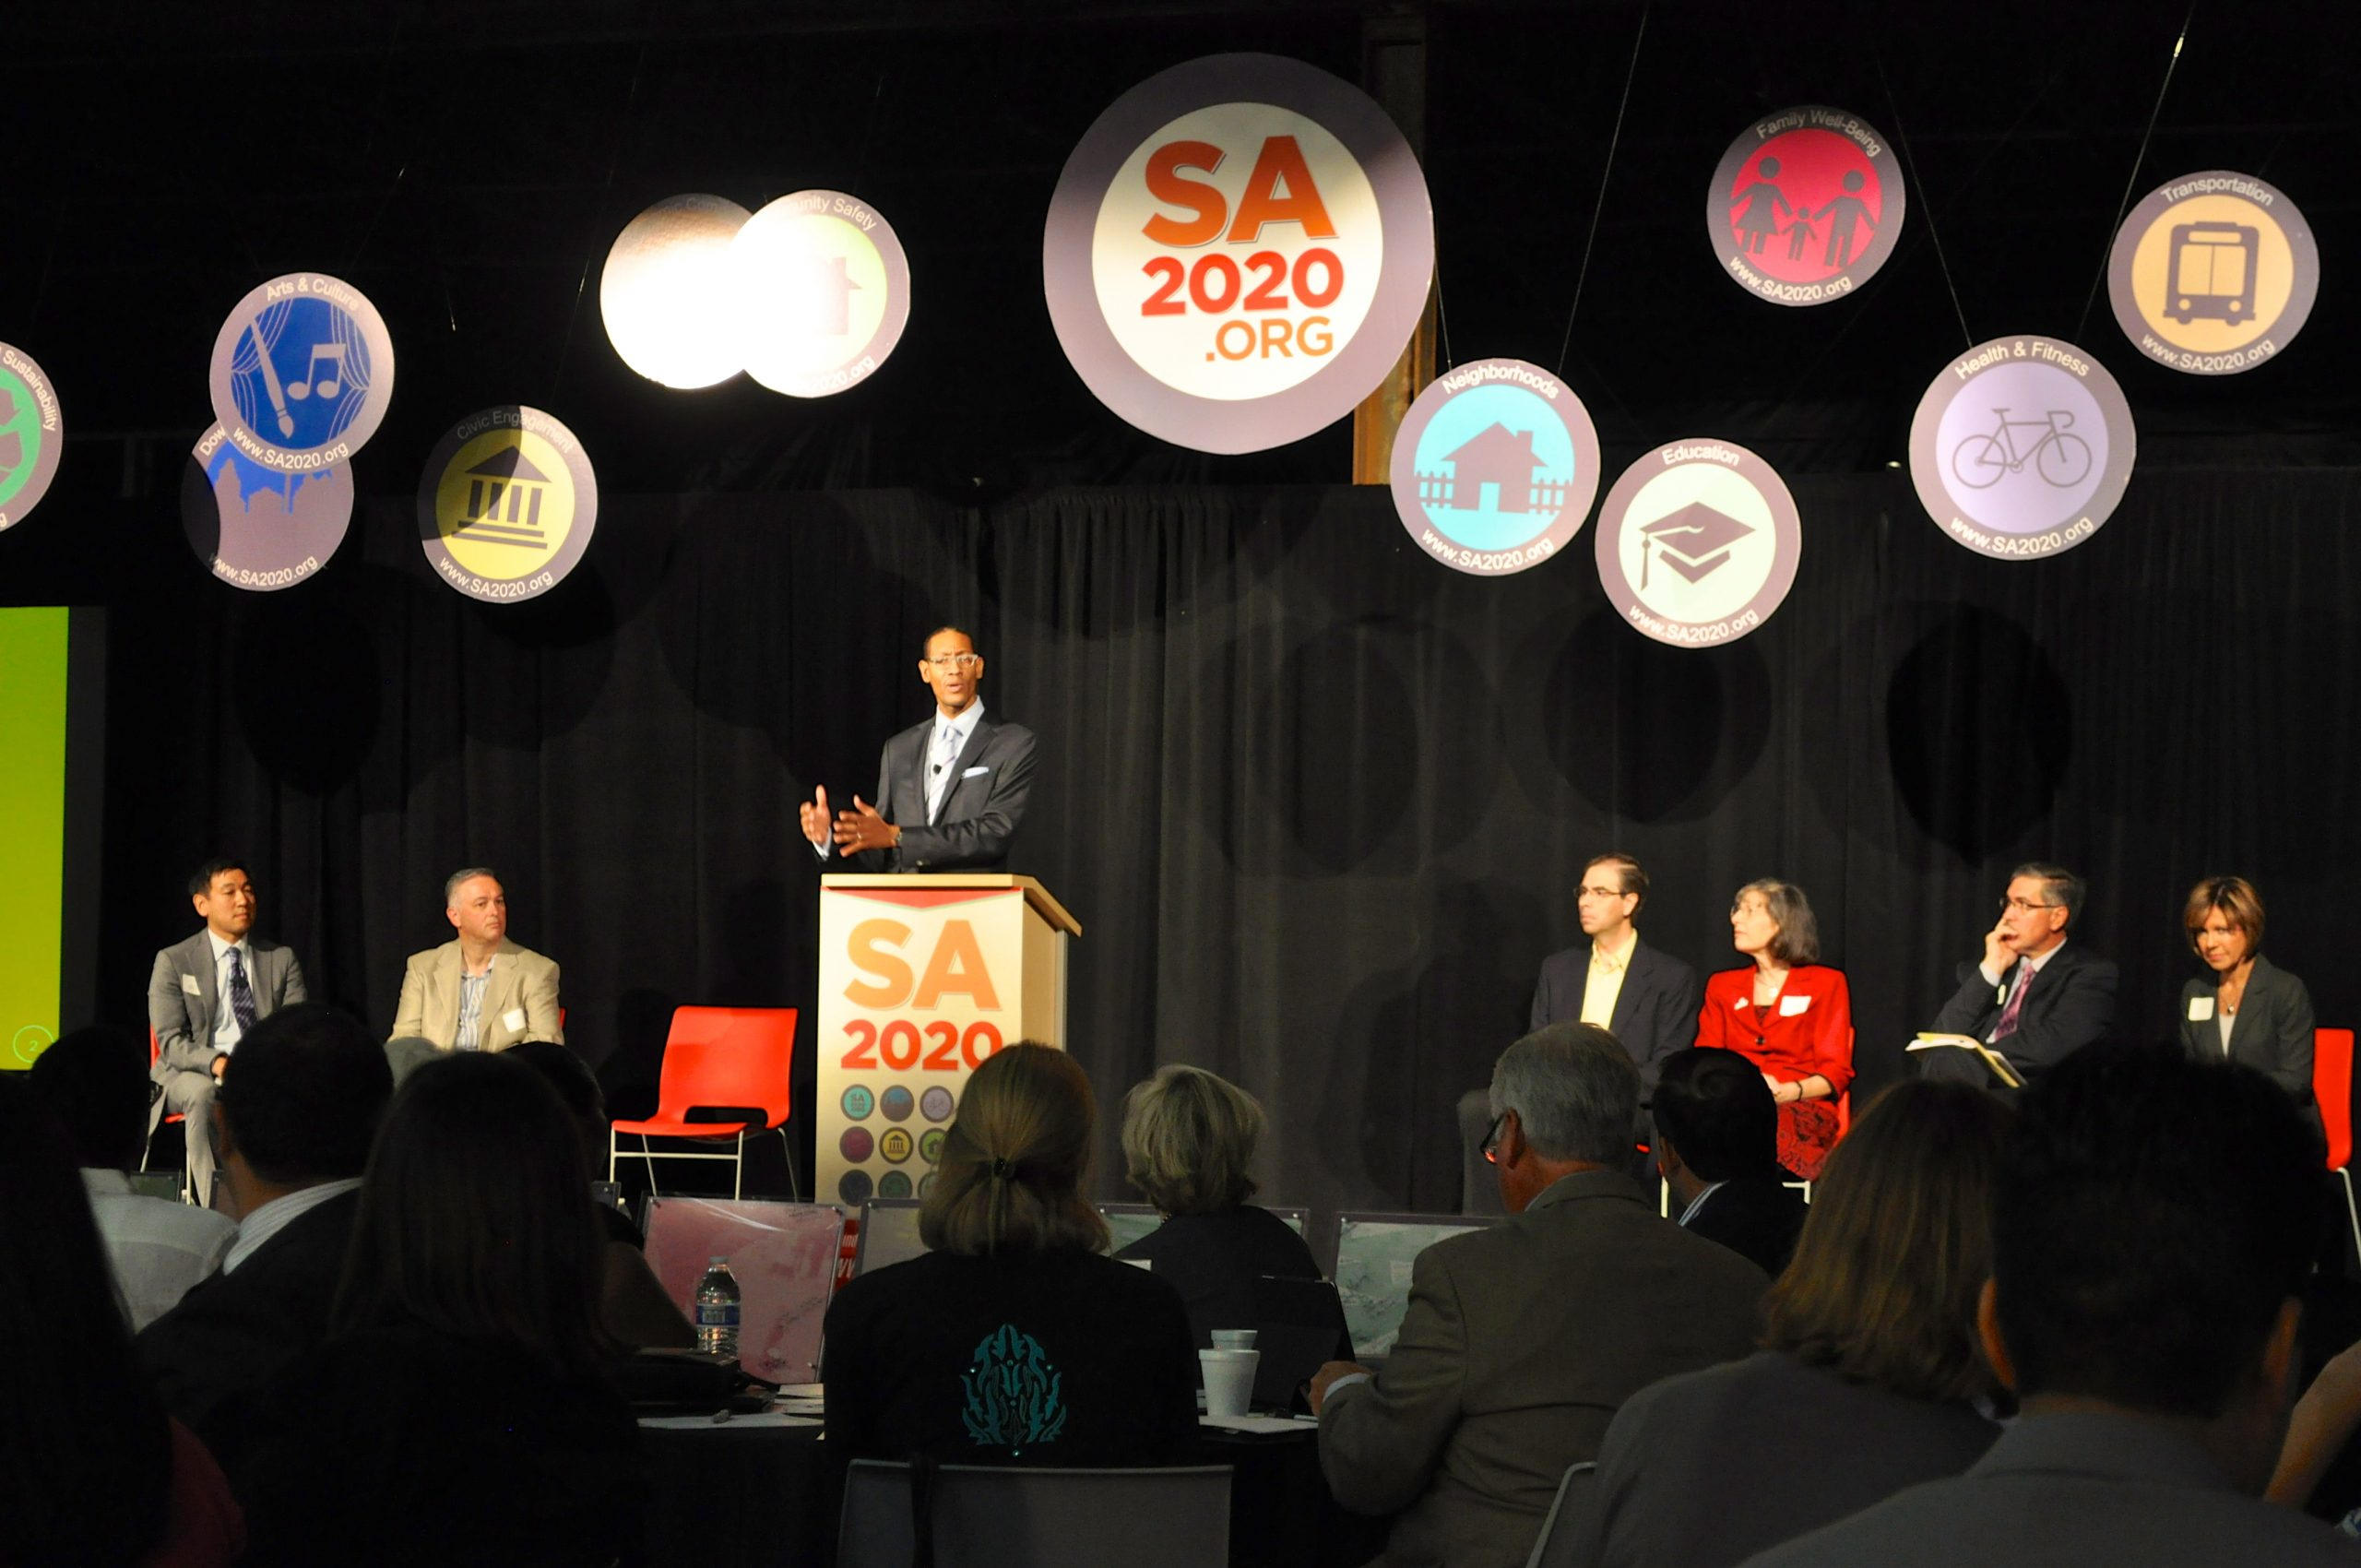 SA200 CEO Darryl Byrd adresses a crowd of more than 200 invited guests at Rackspace during the SA2020 Indicator Report conference and release. Photo by Iris Dimmick.